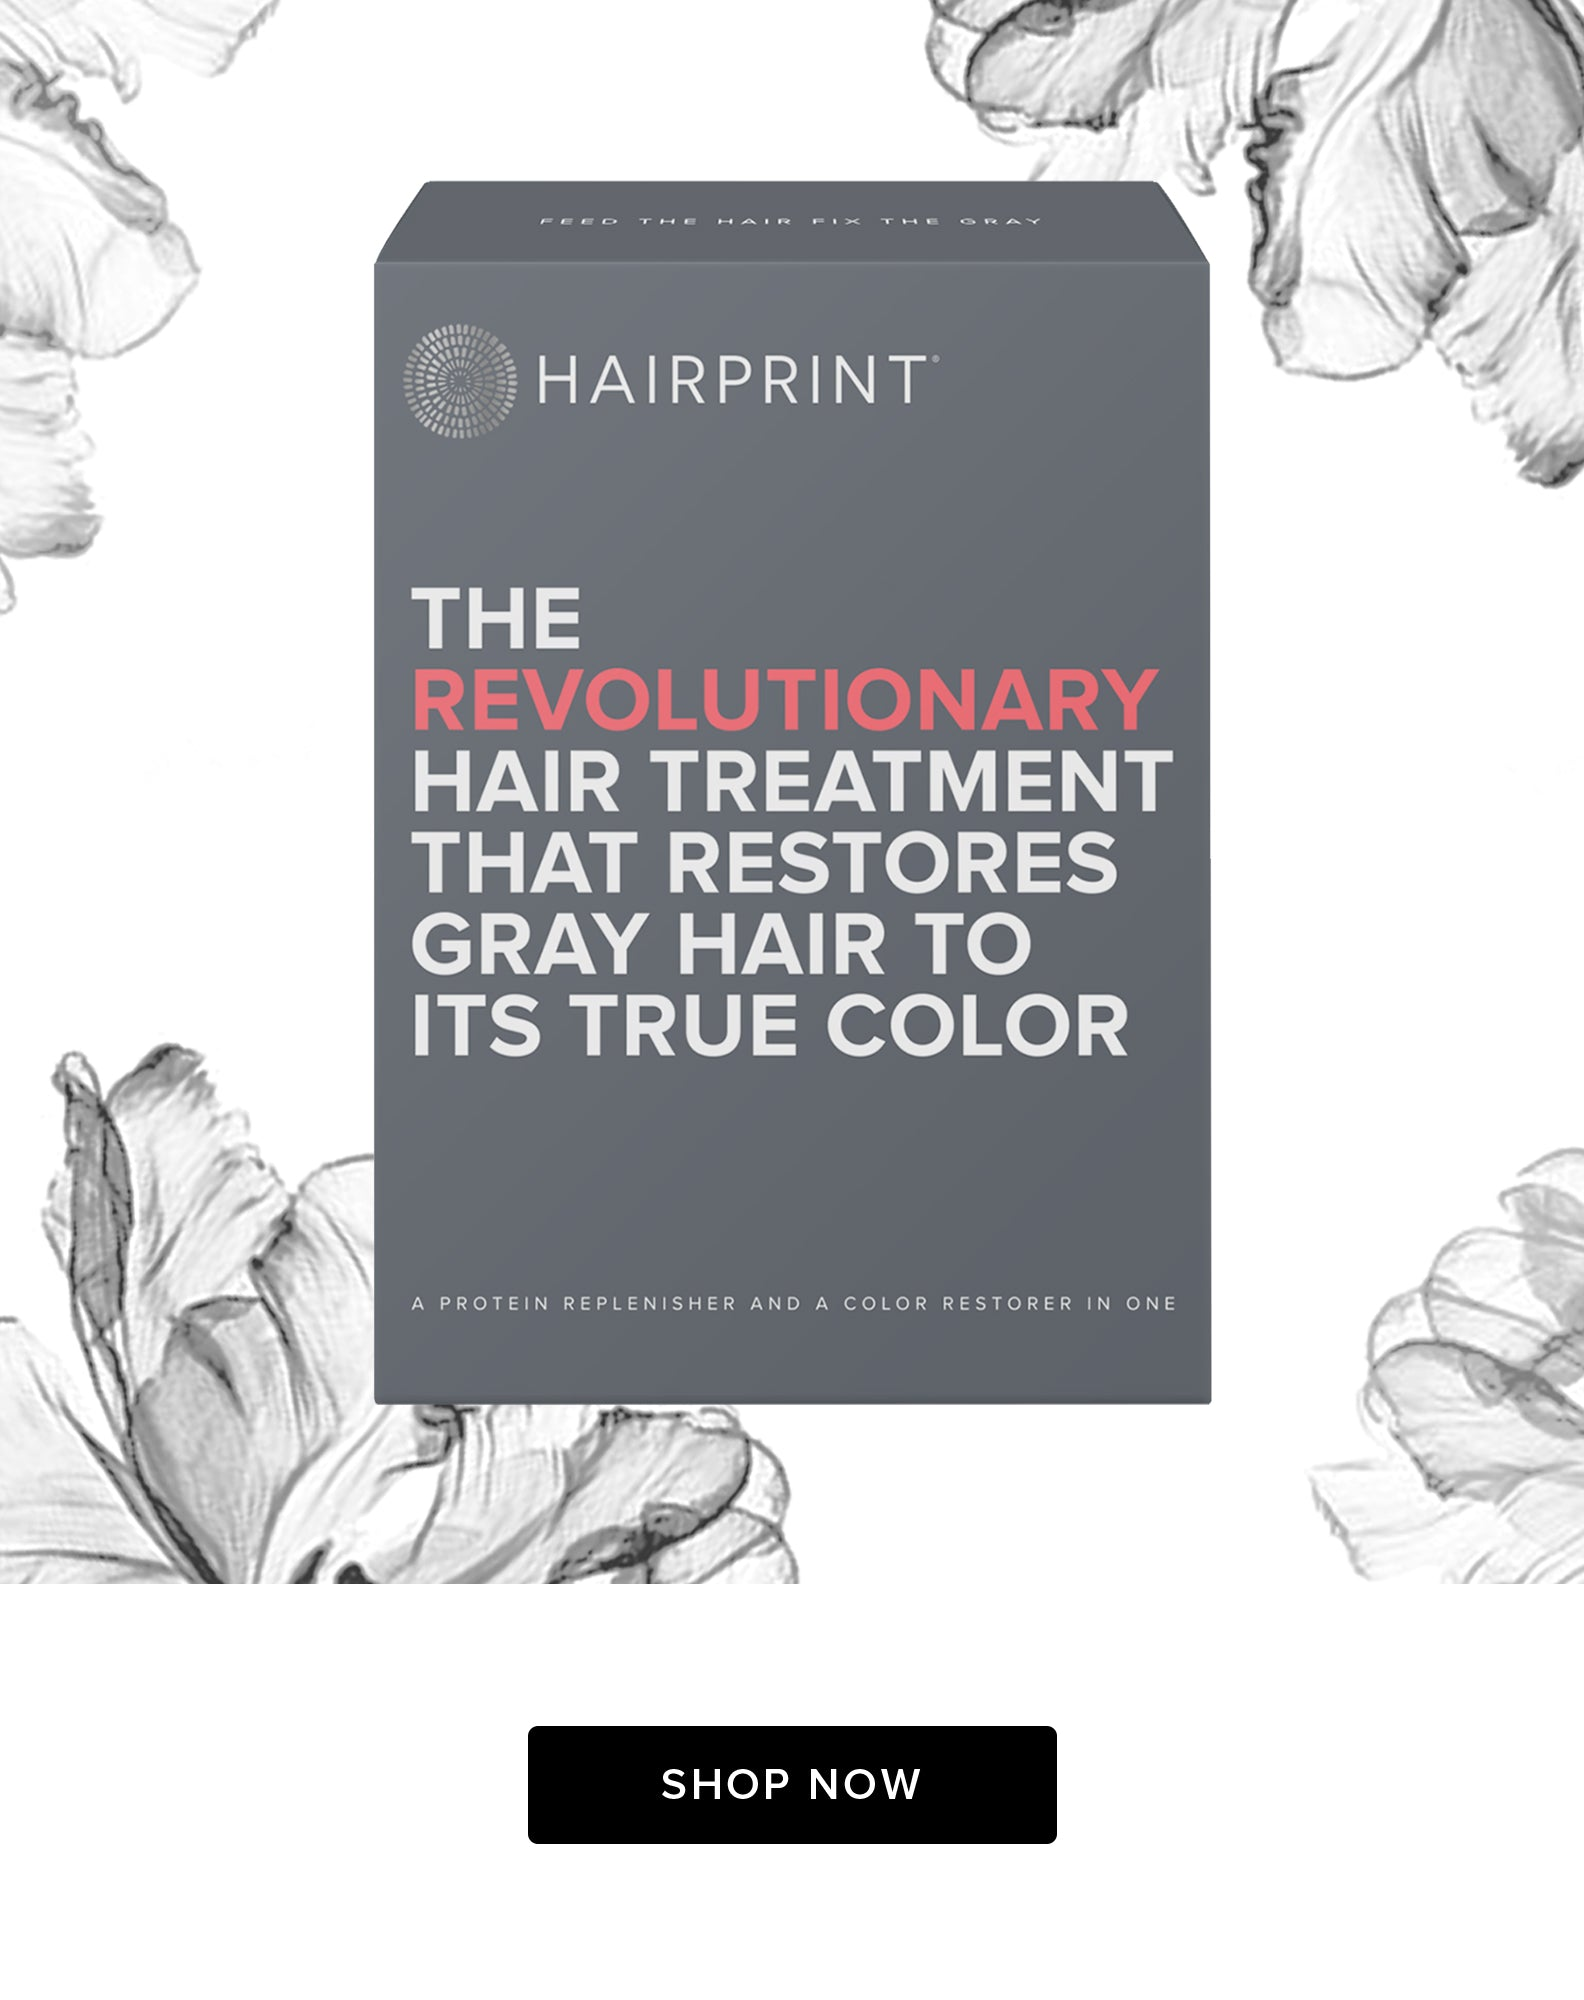 Hairprint: Powerful Botanical Products for Hair, Skin, & Scalp